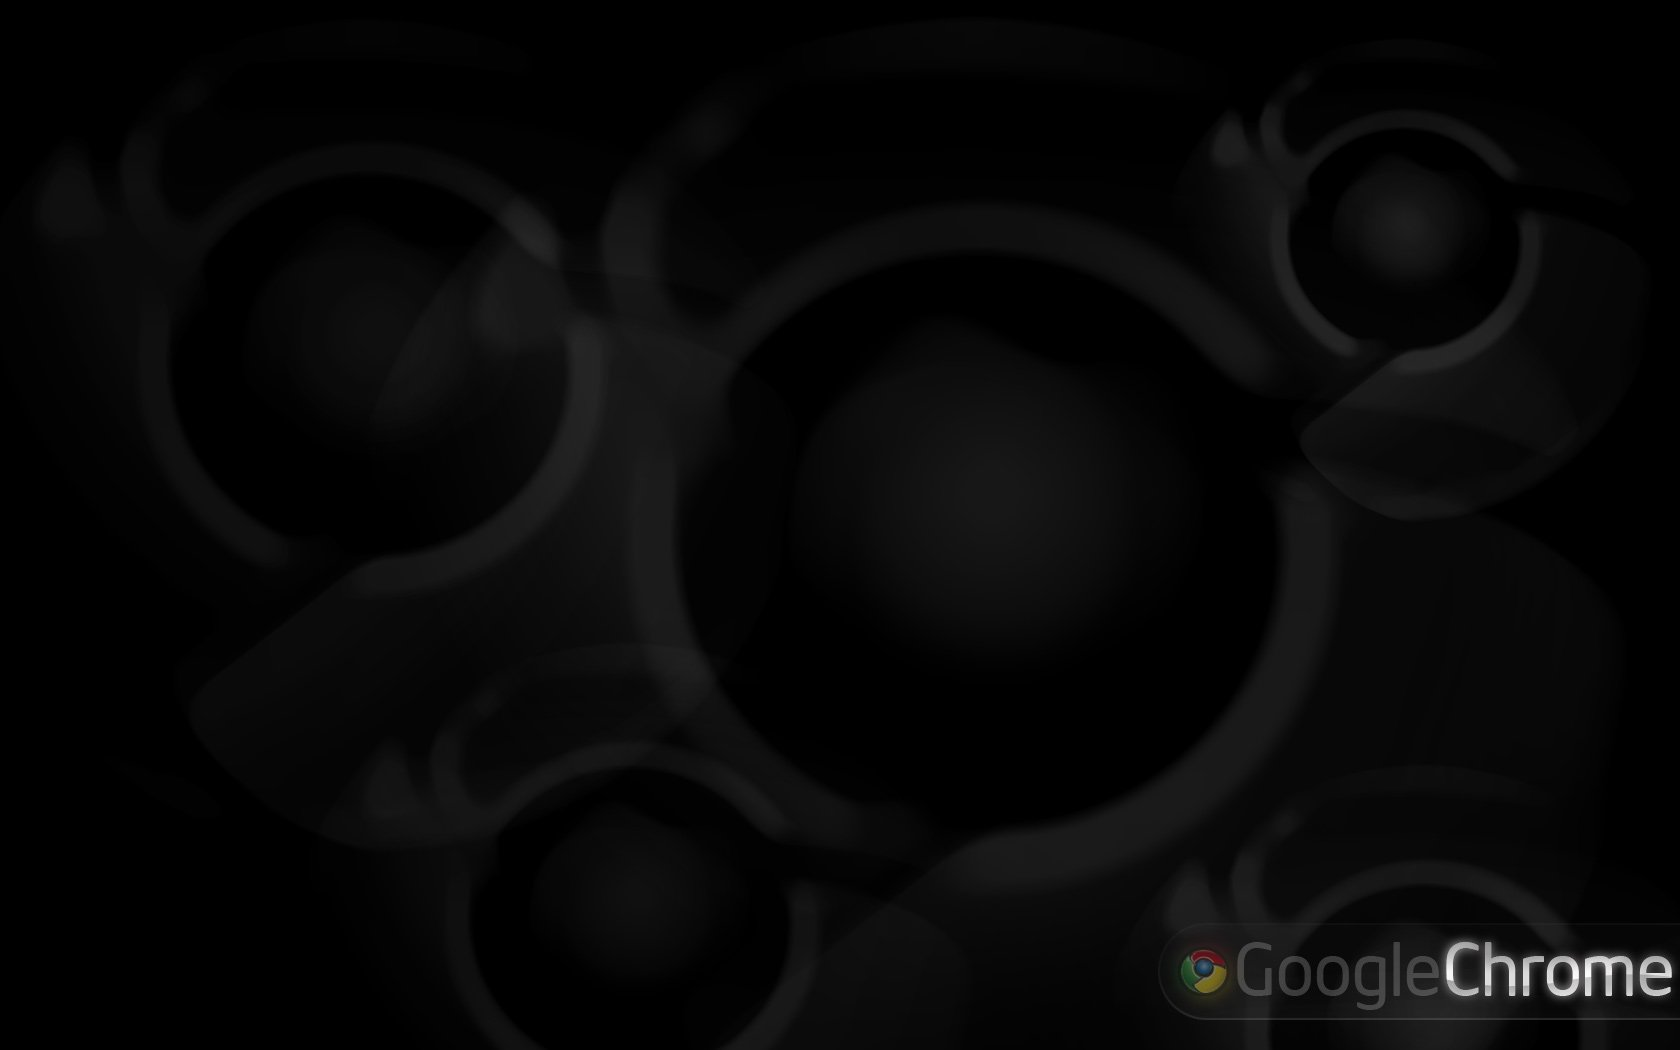 Google Chrome Wallpaper And Hintergrund 1680x1050 Id 77236